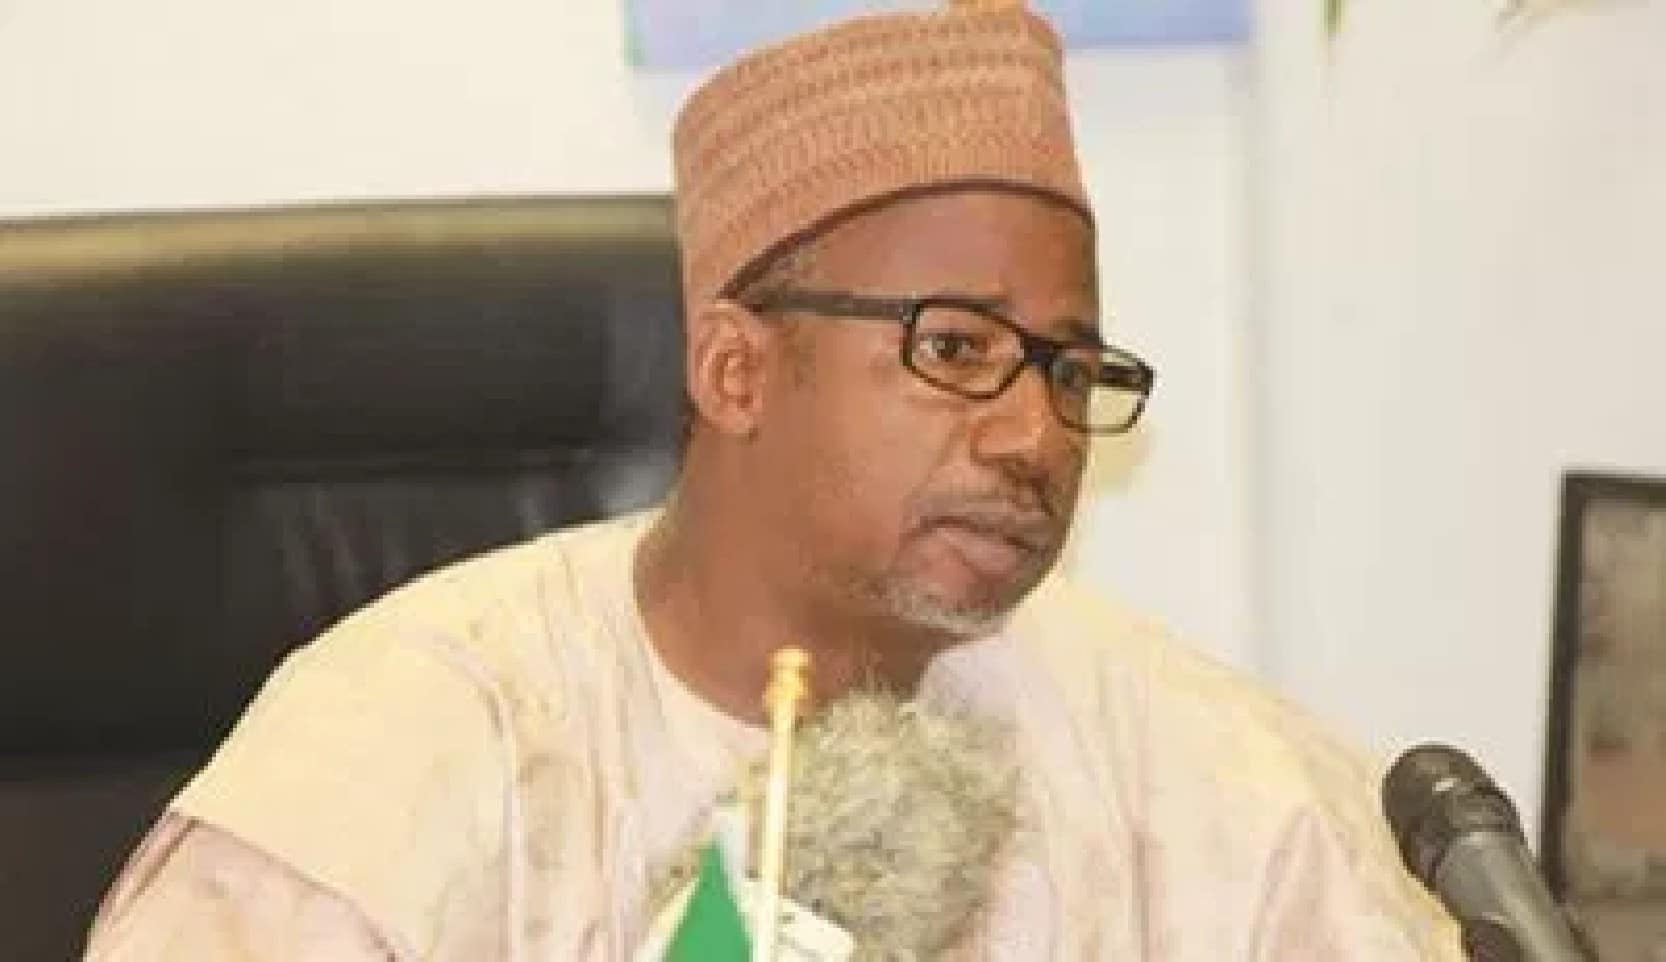 Bauchi State On Wednesday Said Workers In The State Had Agreed To Contribute Part Of Their Salaries To Support The Fight Against Coronavirus In The State. Mr Muktar Gidado, Senior Special Assis